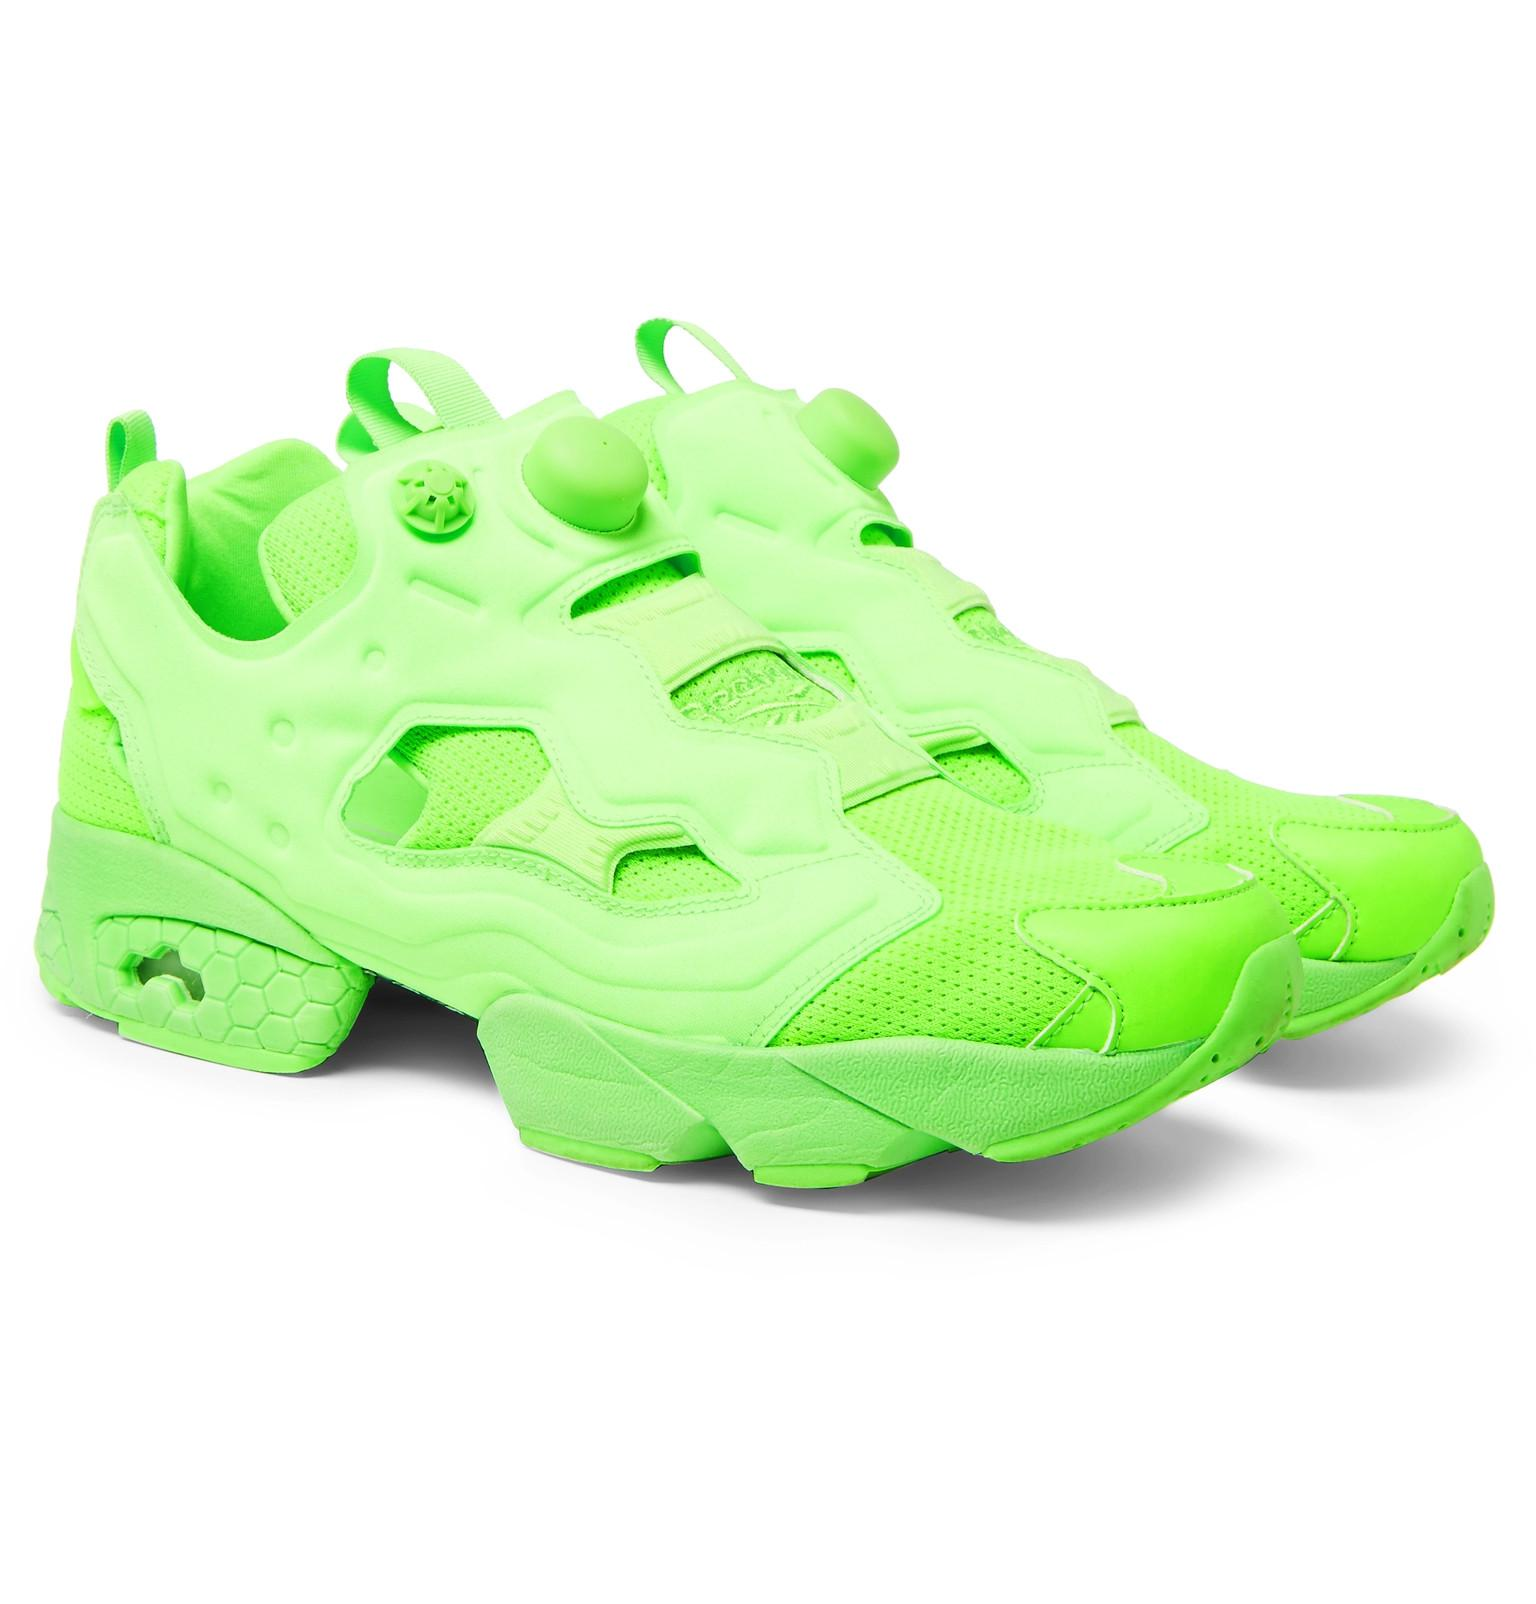 Vetements + Reebok Instapump Fury Neon Sneakers - Green